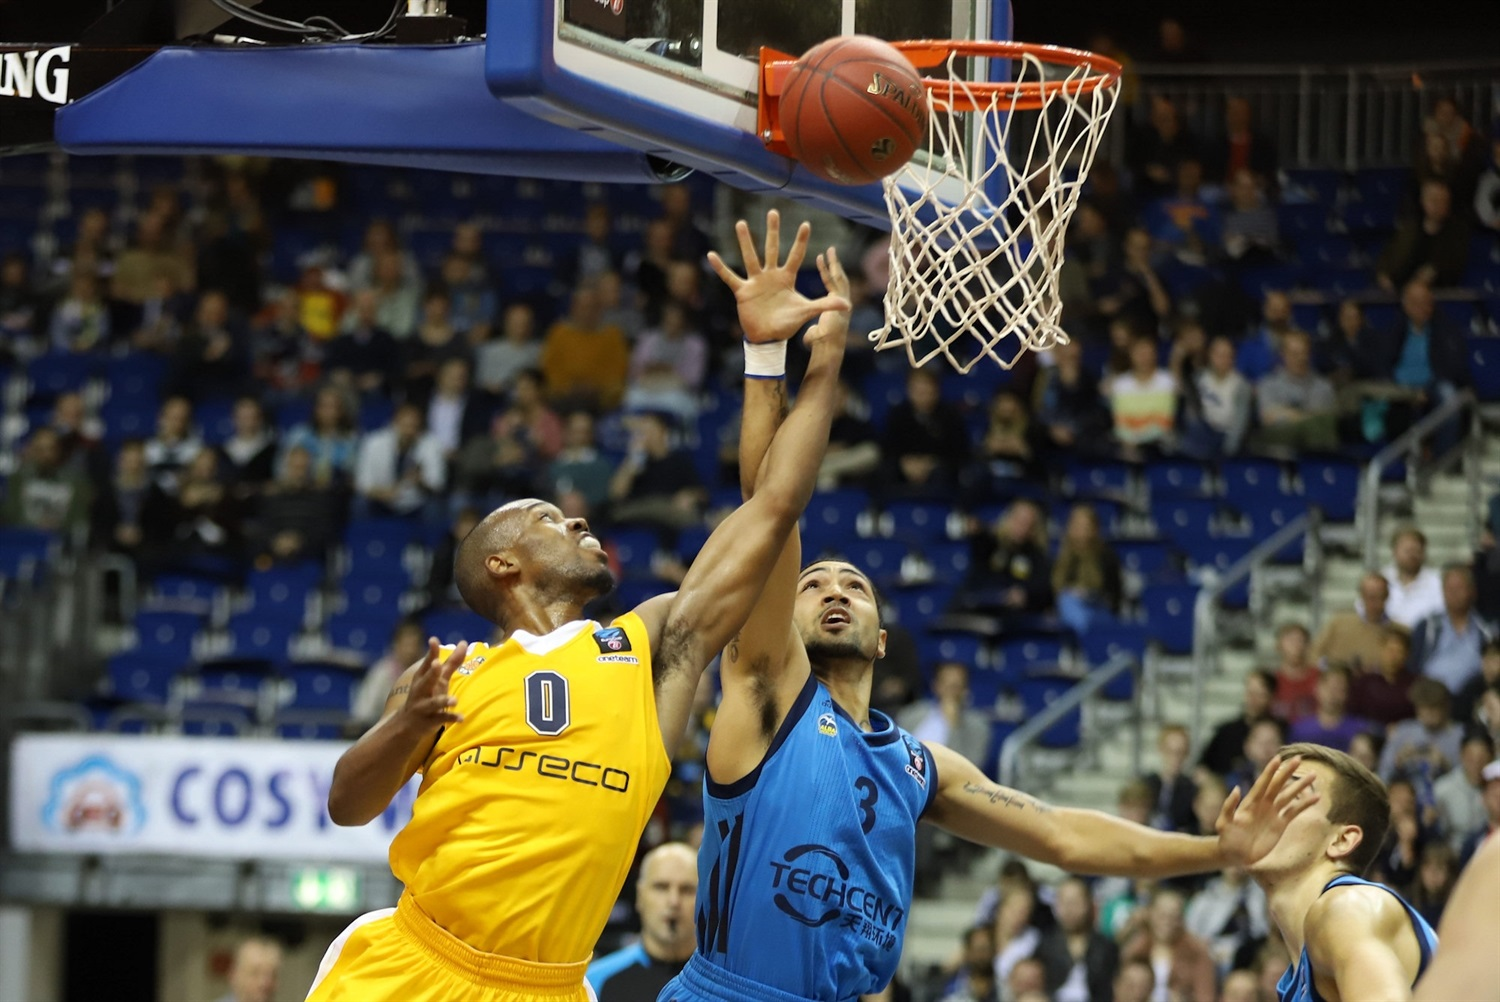 Peyton Siva - ALBA Berlin (photo Andreas Knopf - ALBA) - EC18